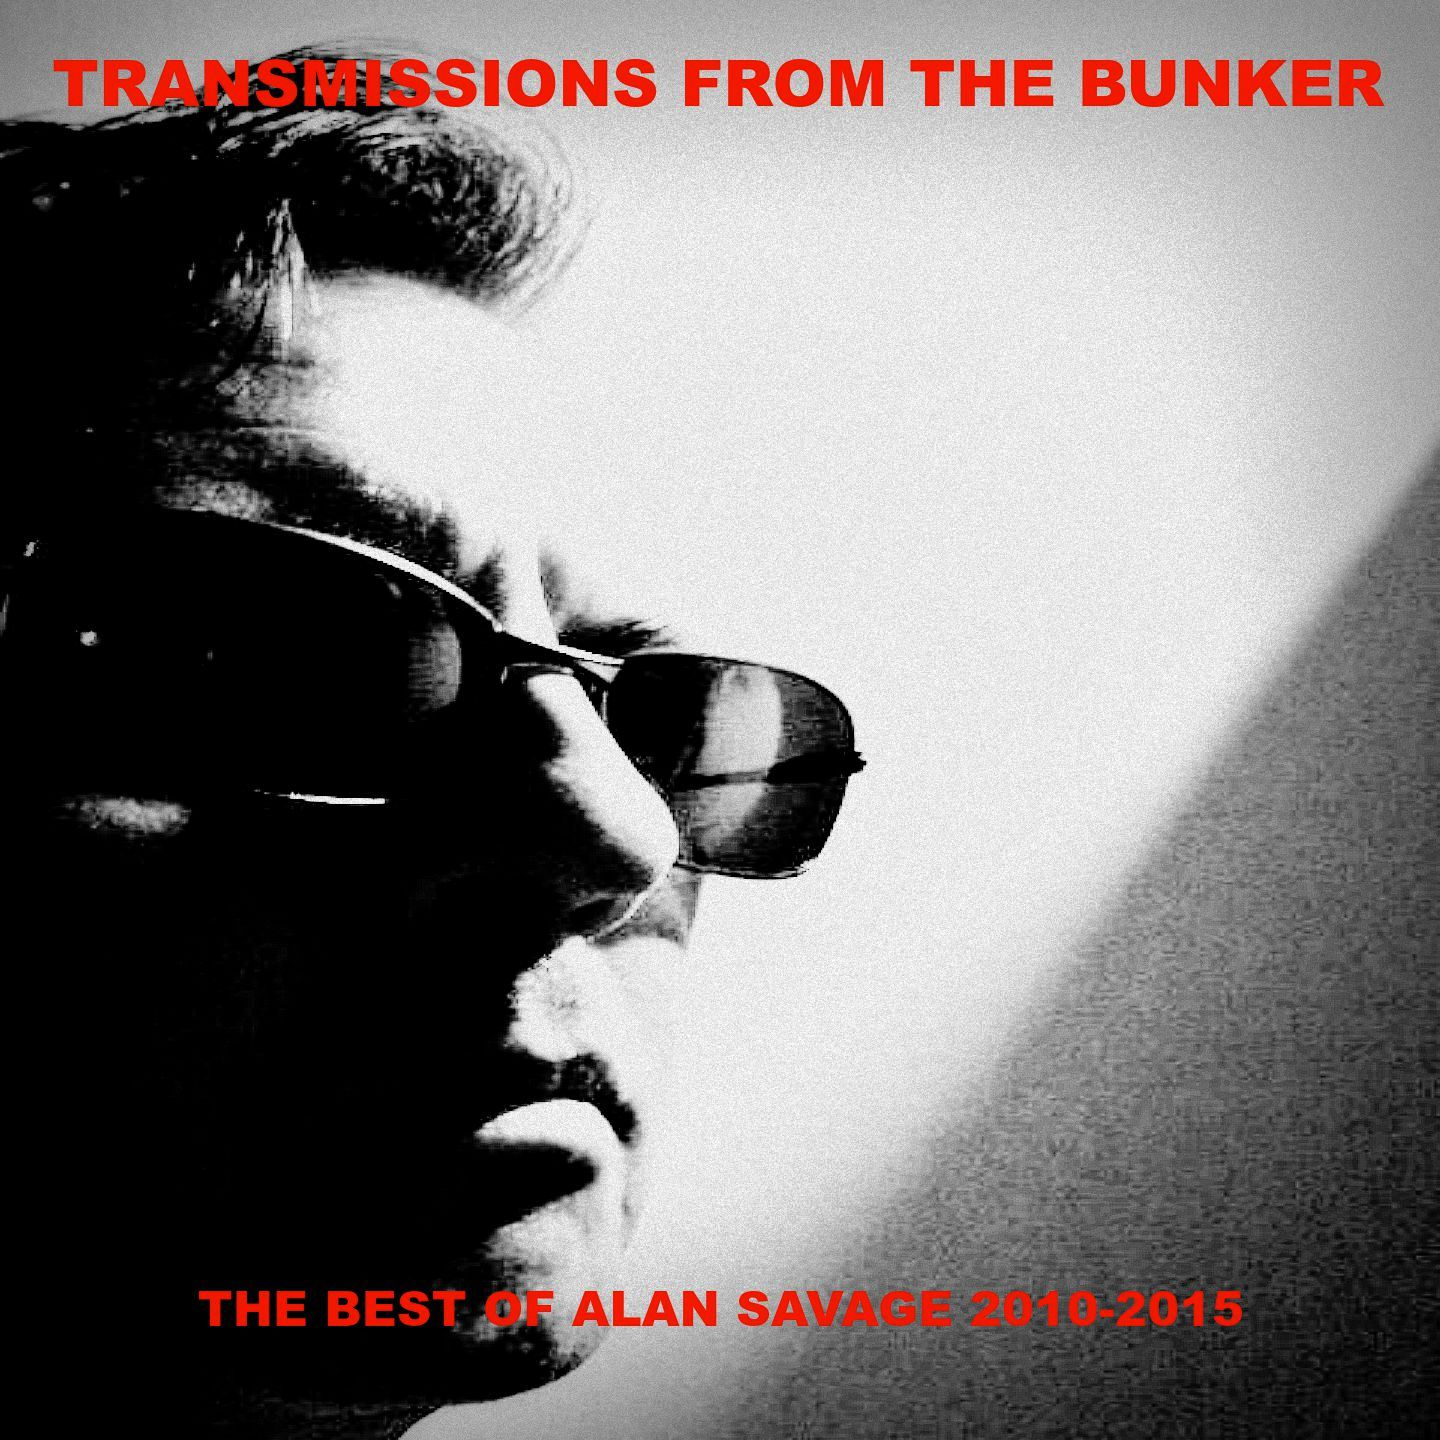 Transmissions from The Bunker: The Best of Alan Savage 2010-2015